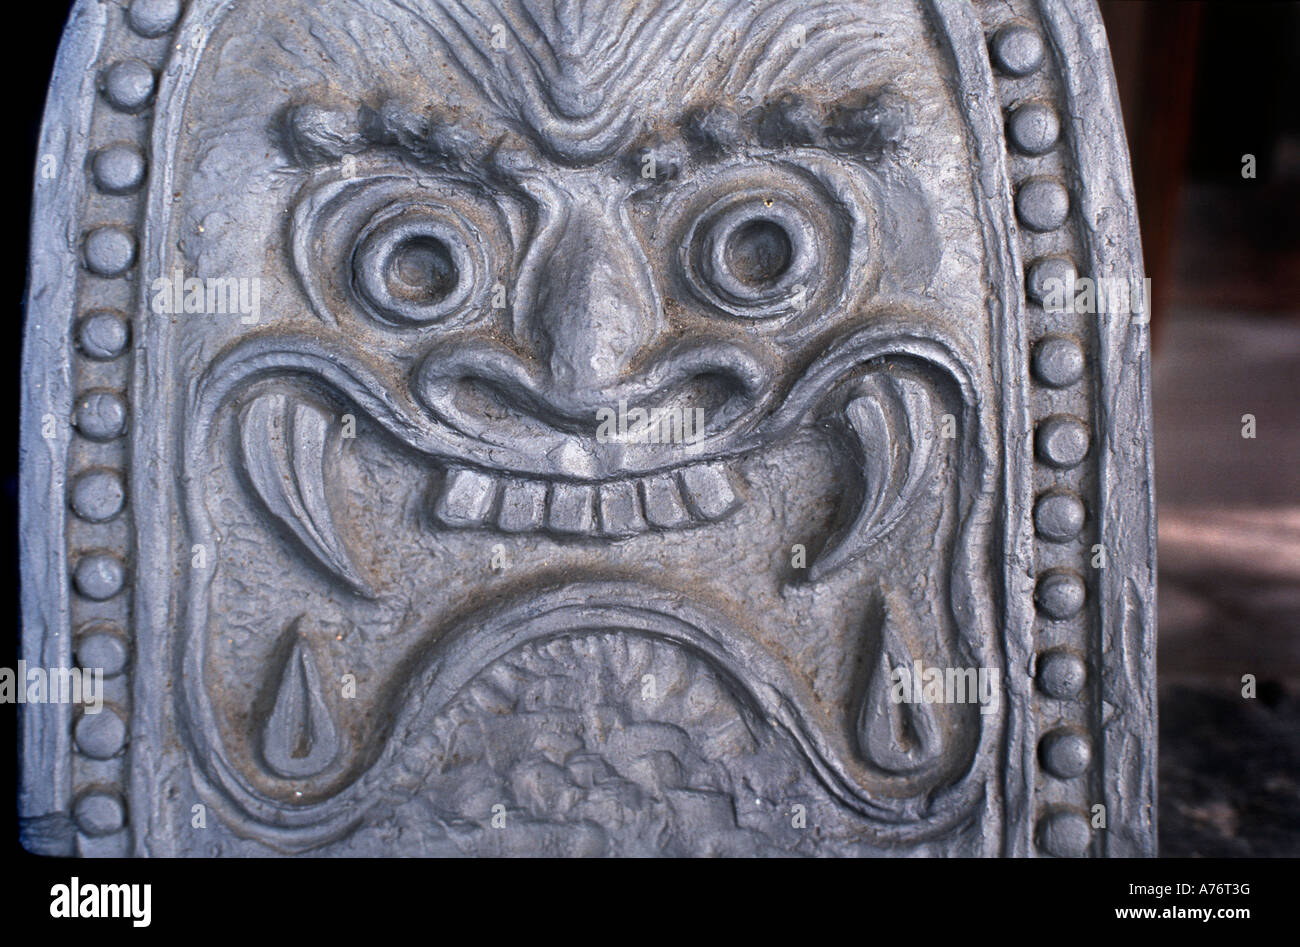 Sculpted roof tile at eaves Face with fierce features Japan - Stock Image